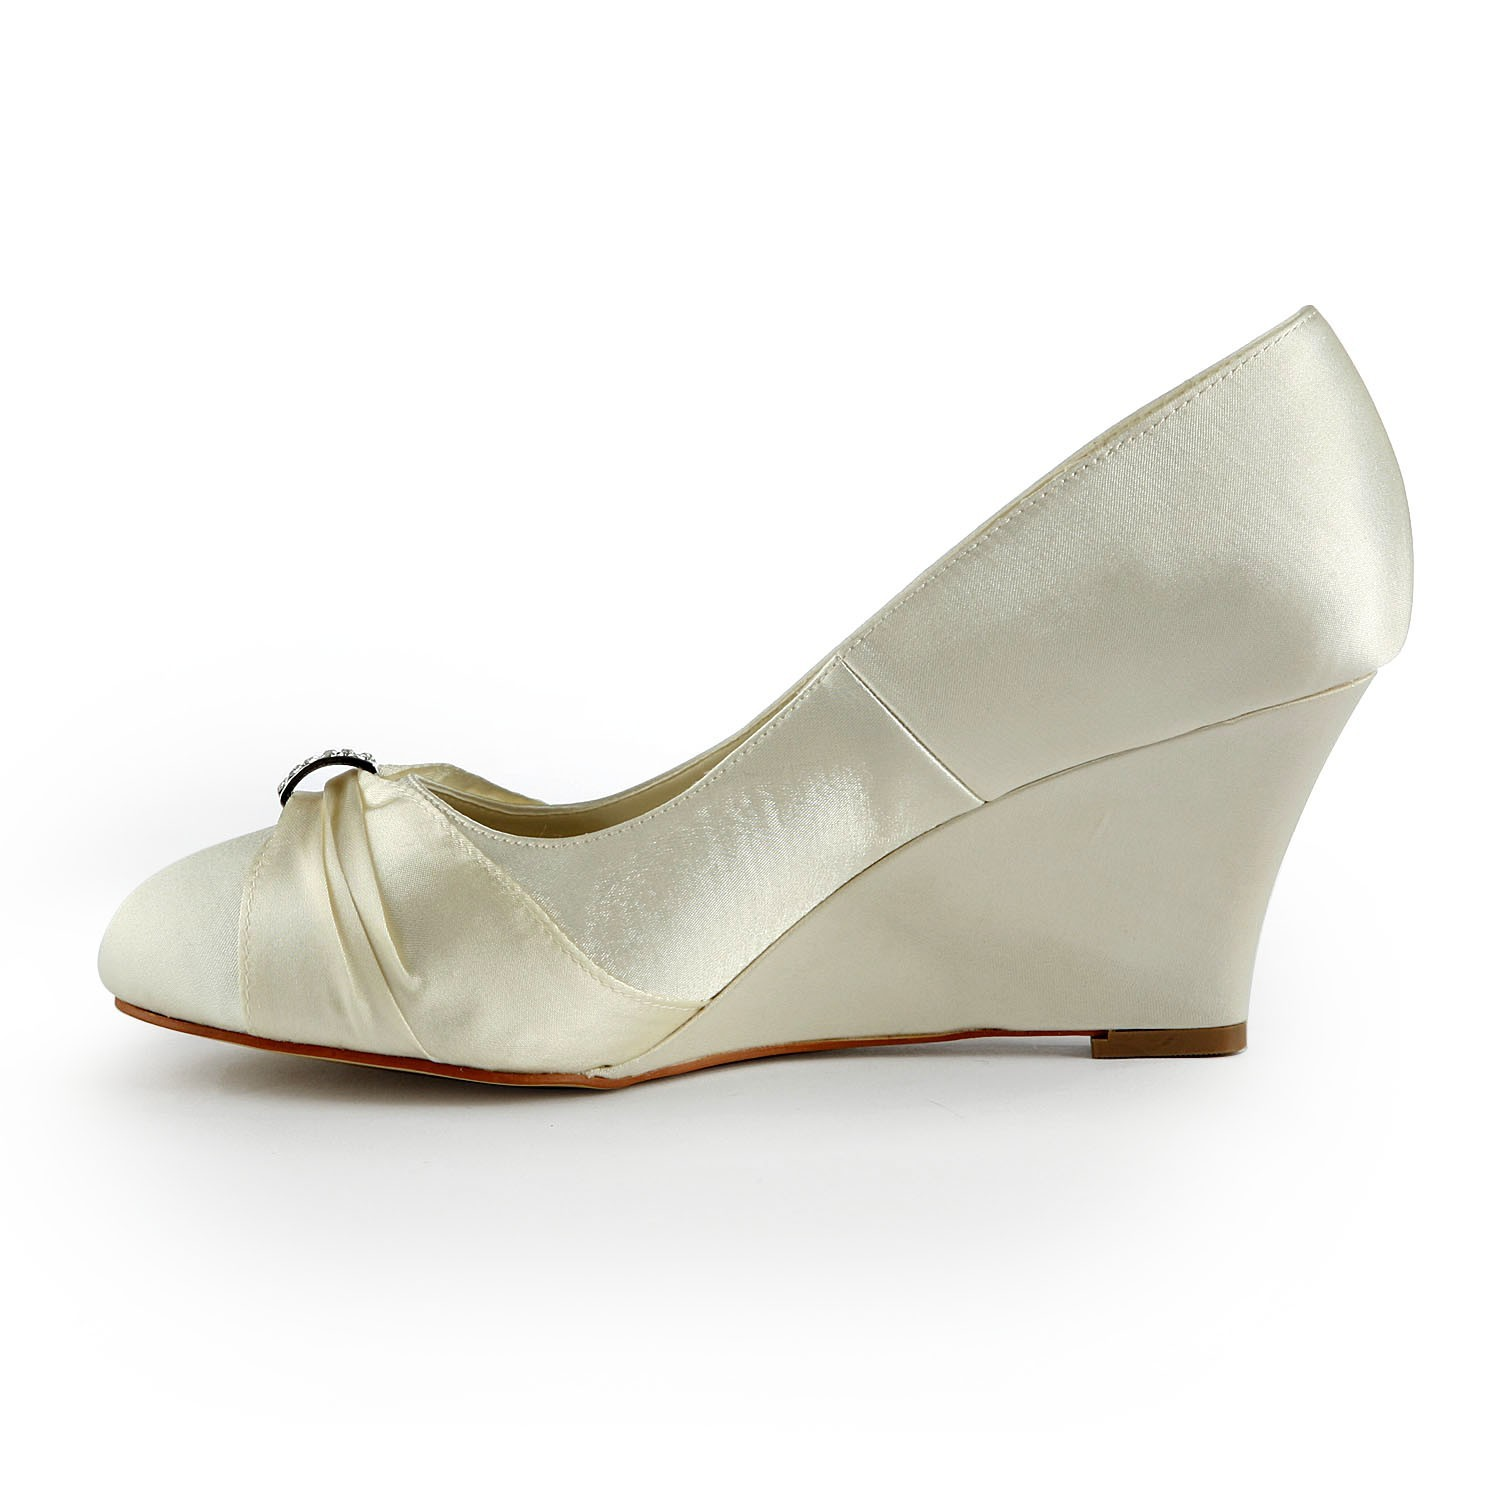 Wedge Heel Shoes For Wedding: Women's Satin Wedge Heel Wedges With Rhinestone Ivory